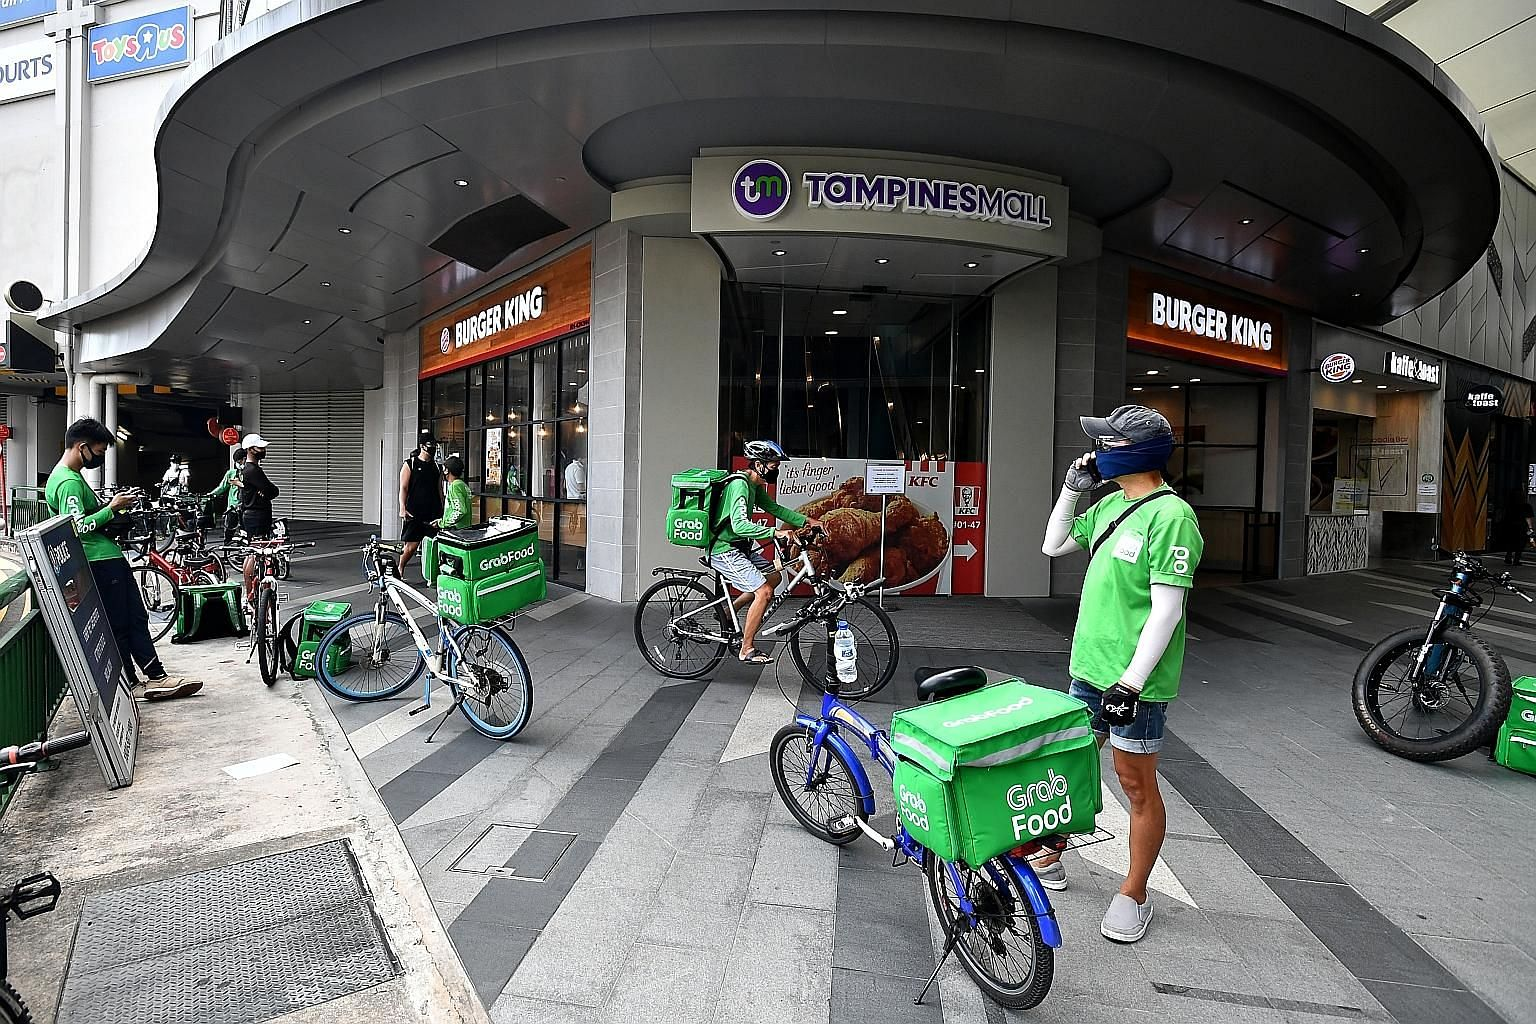 UOB customers spent 42 per cent more on online food orders and deliveries and 38 per cent more on e-commerce retail in the first quarter this year, from a year ago. Other banks, including Citi, also saw a rise in spending on online food orders.